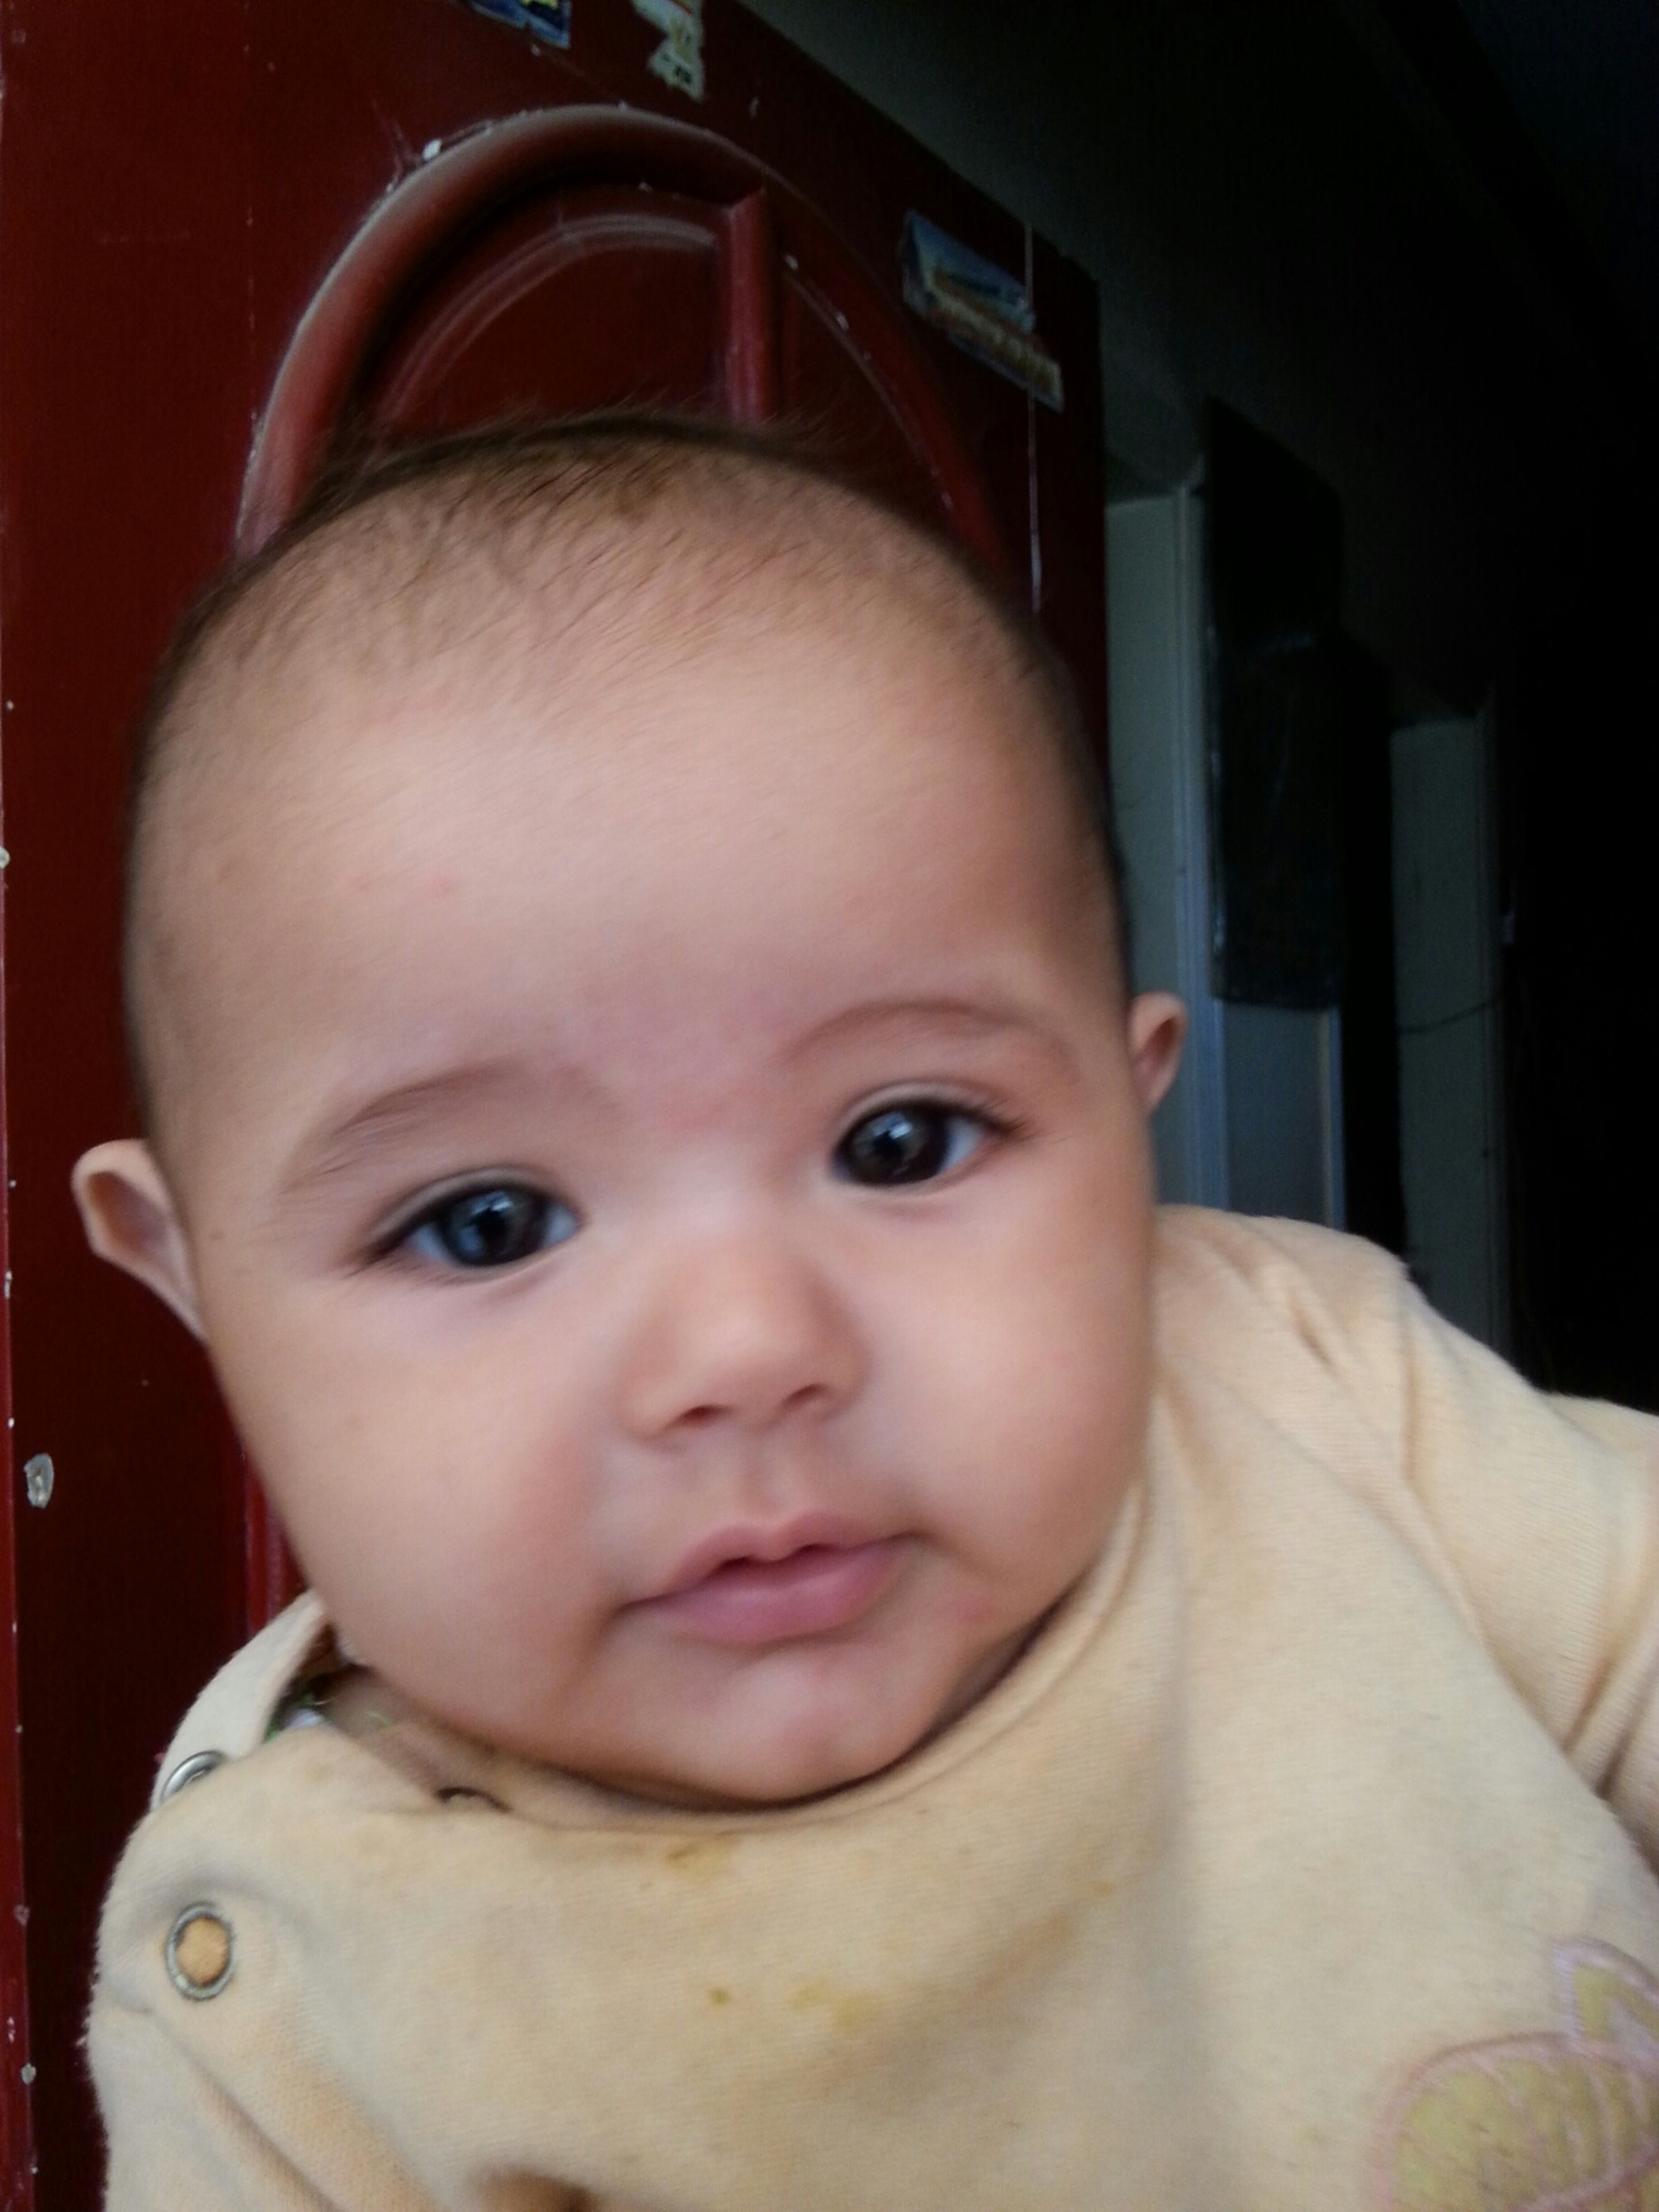 indoors, childhood, headshot, person, innocence, close-up, cute, elementary age, lifestyles, boys, looking at camera, portrait, front view, leisure activity, human face, babyhood, baby, head and shoulders